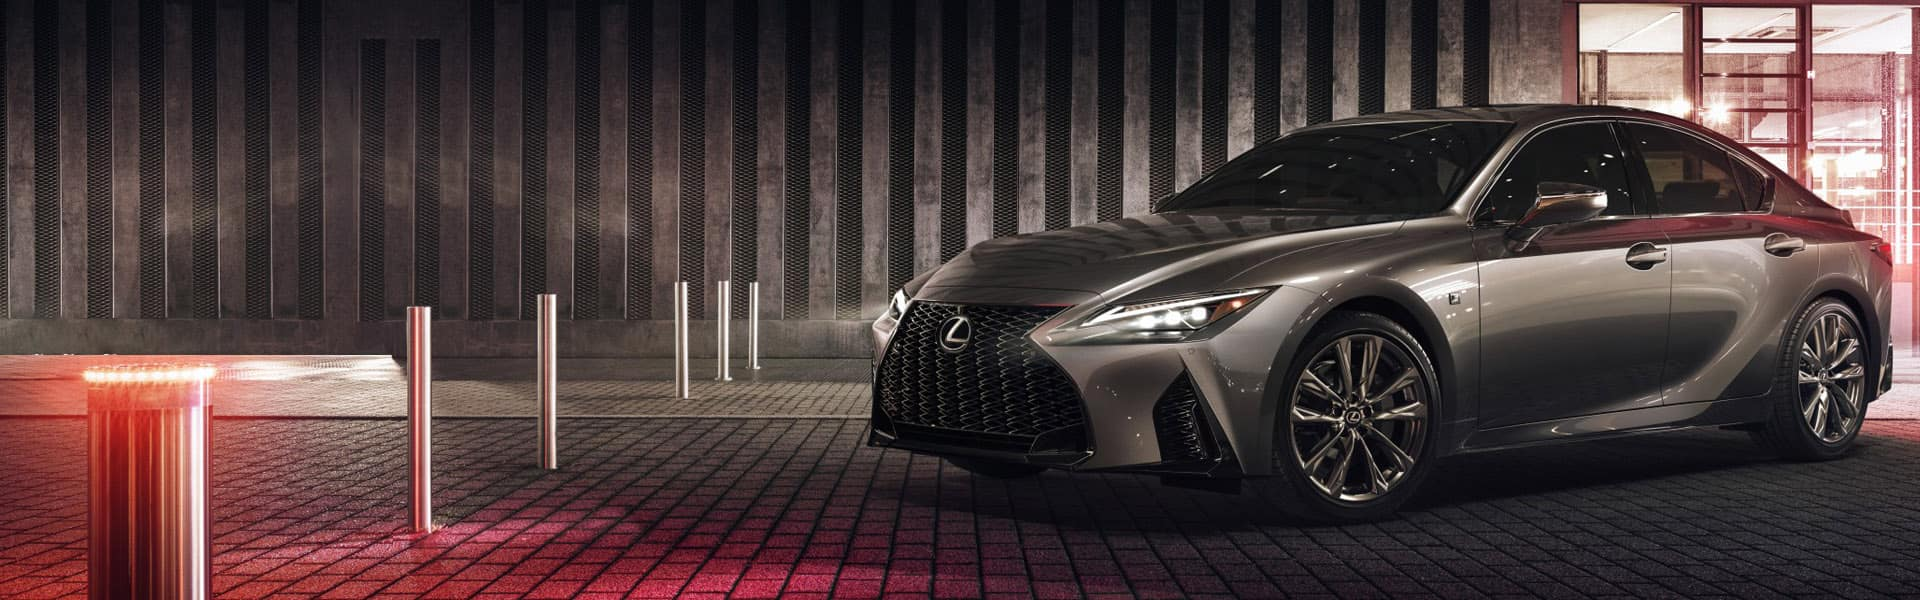 New 2021 Lexus IS